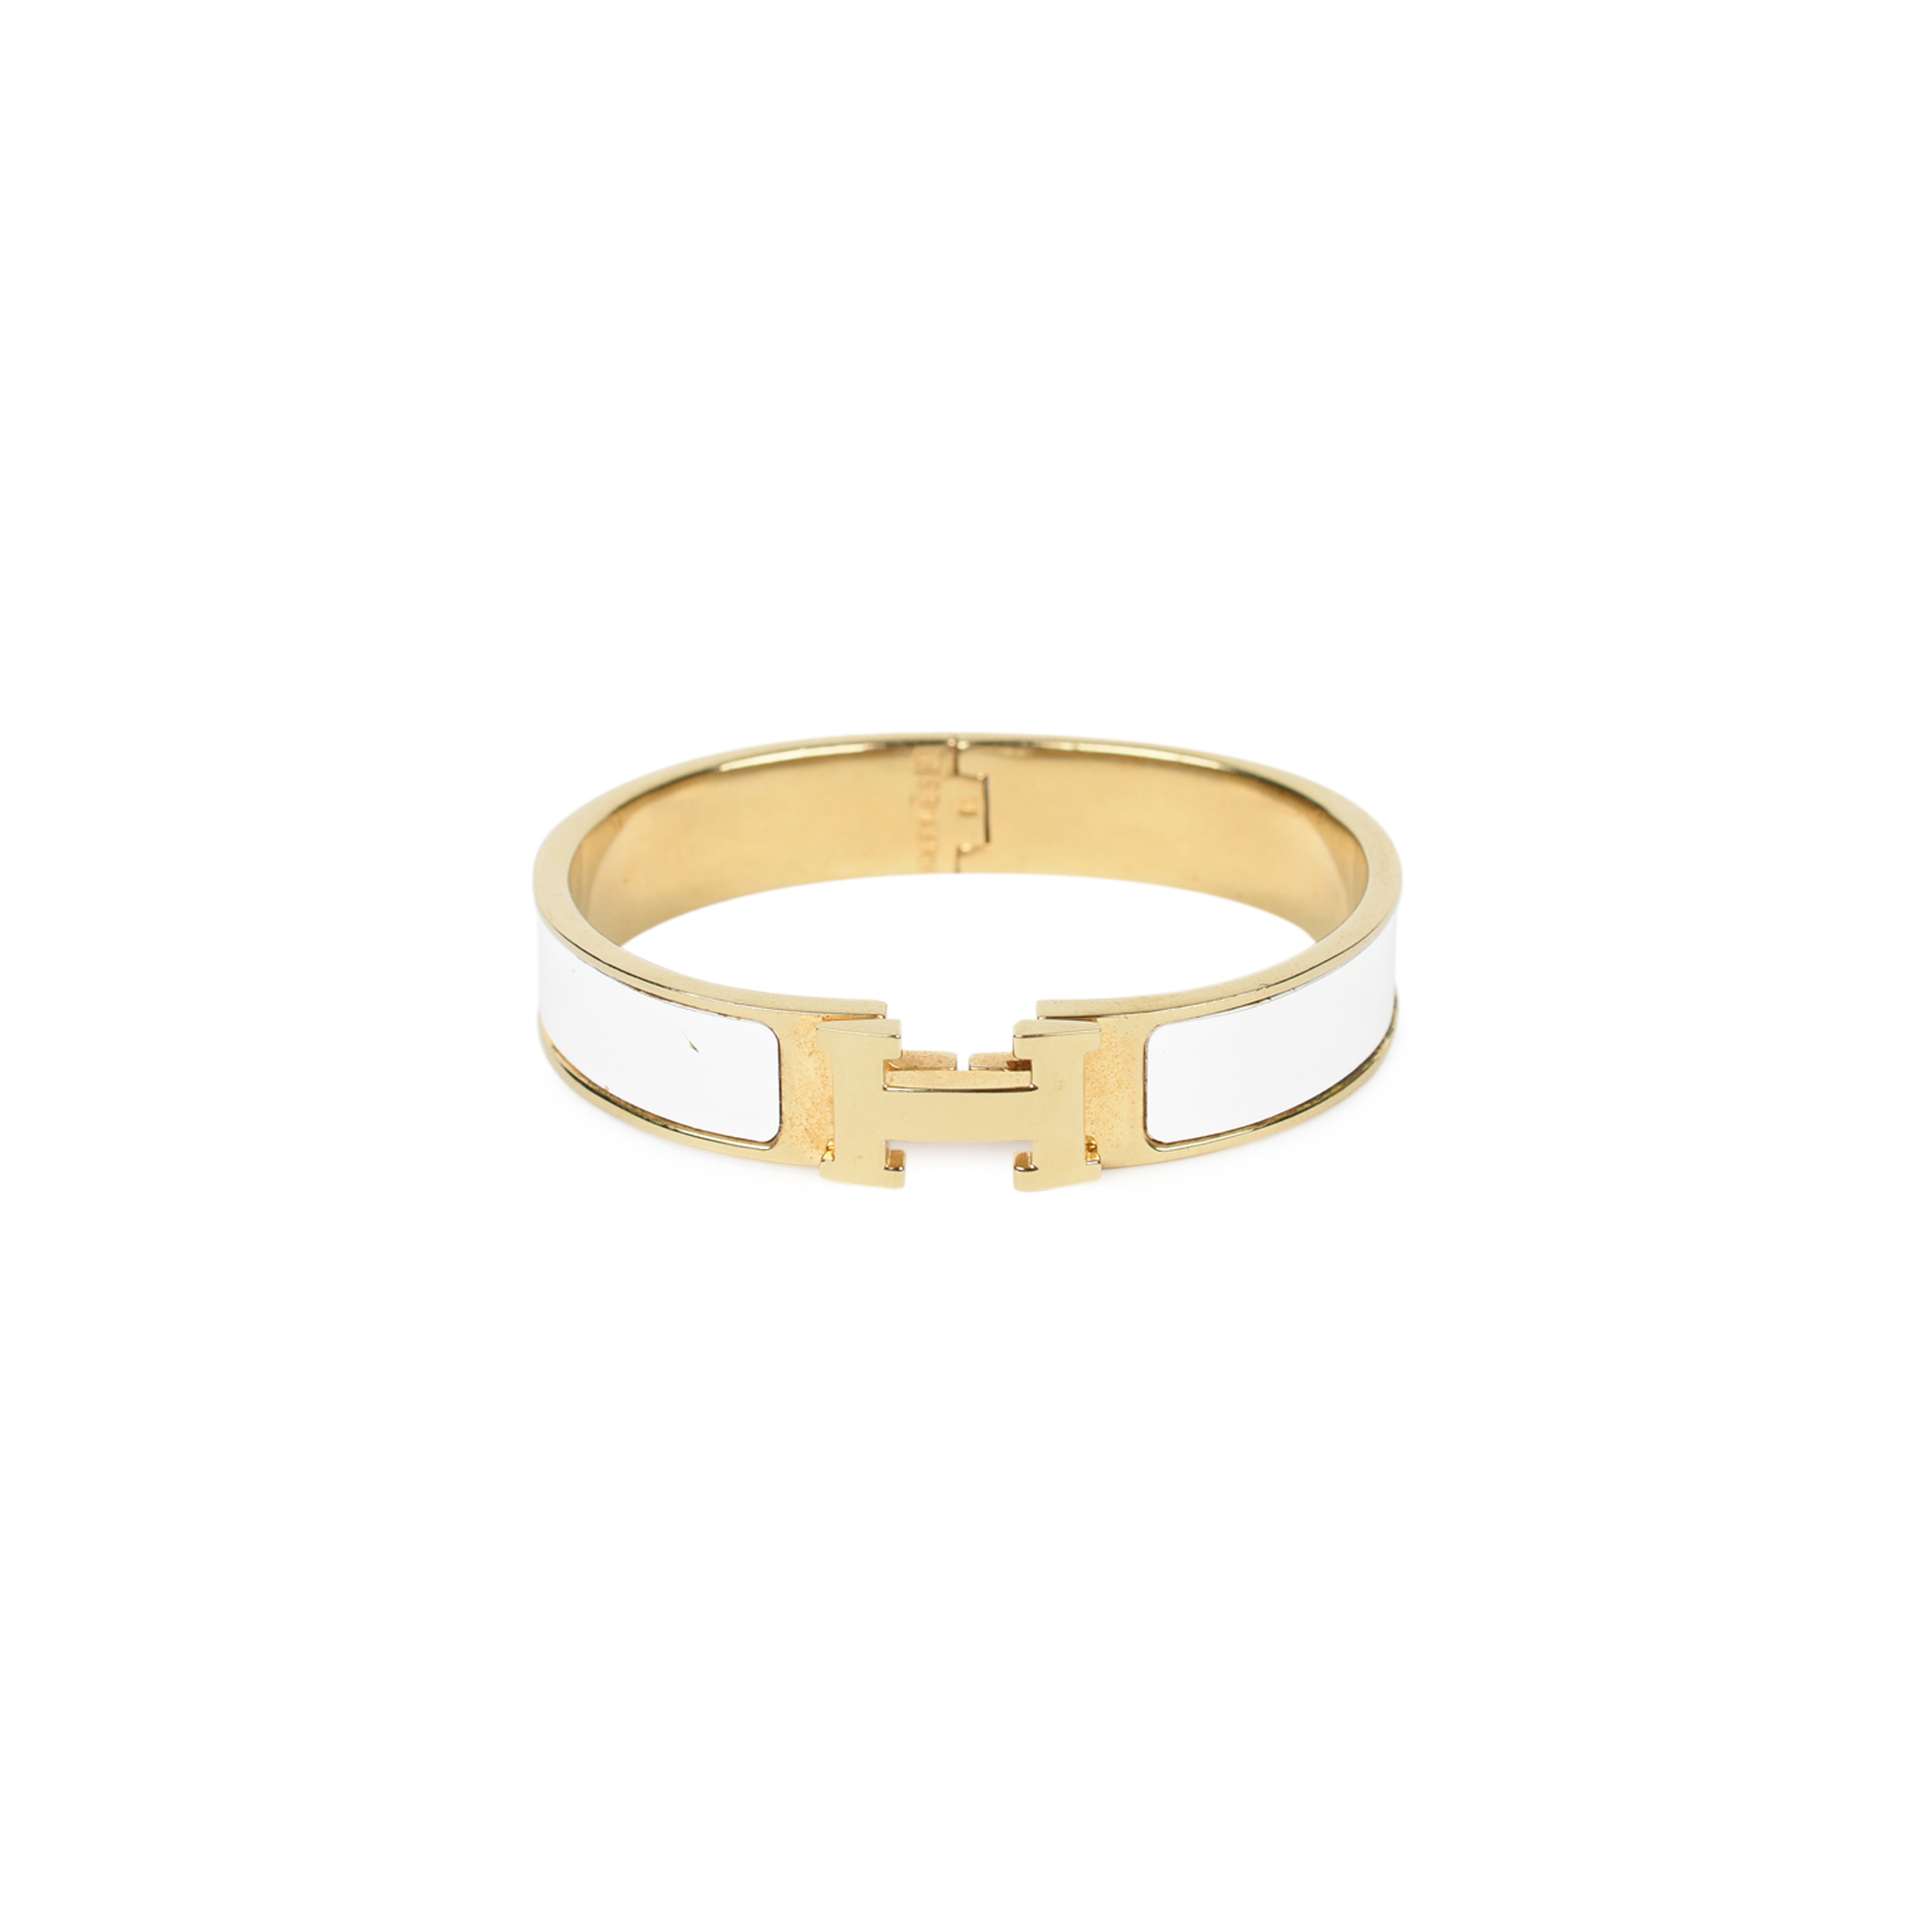 9189d3c683a Authentic Second Hand Hermès Narrow Clic Clac H Bangle (PSS-267-00005) -  THE FIFTH COLLECTION